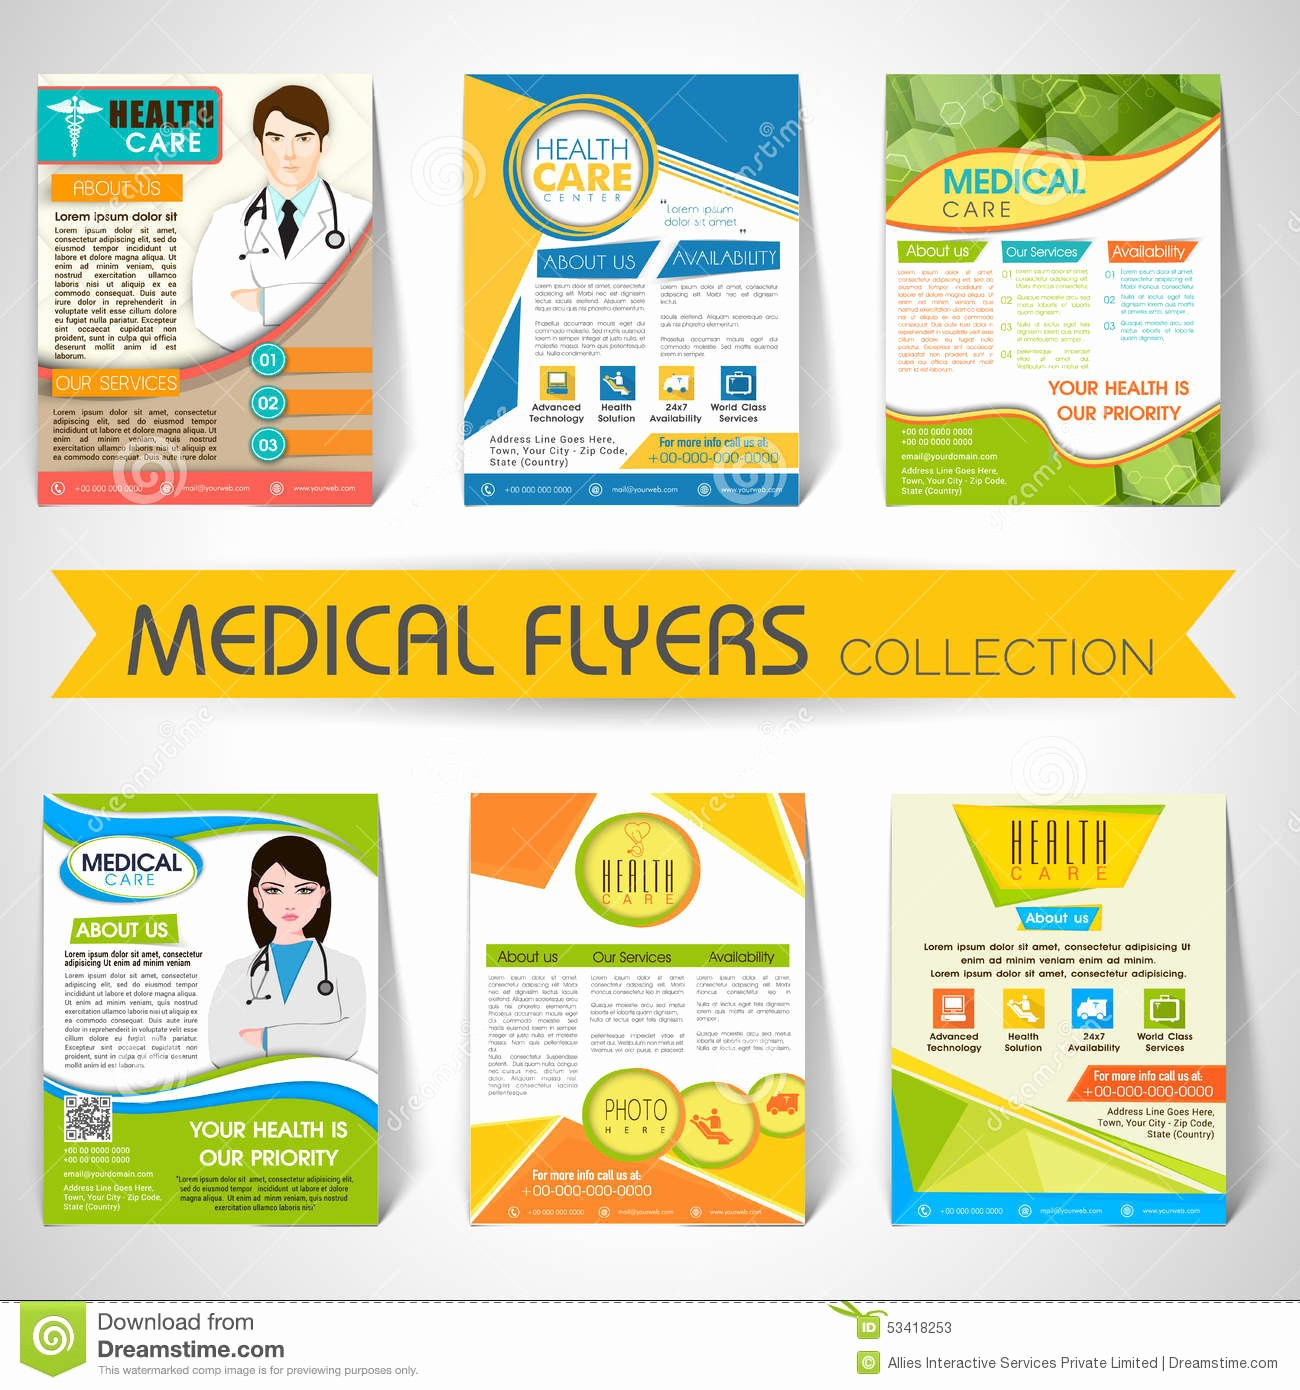 Templates for Flyers and Brochures Elegant Collection Medical Flyers Templates and Banners Stock